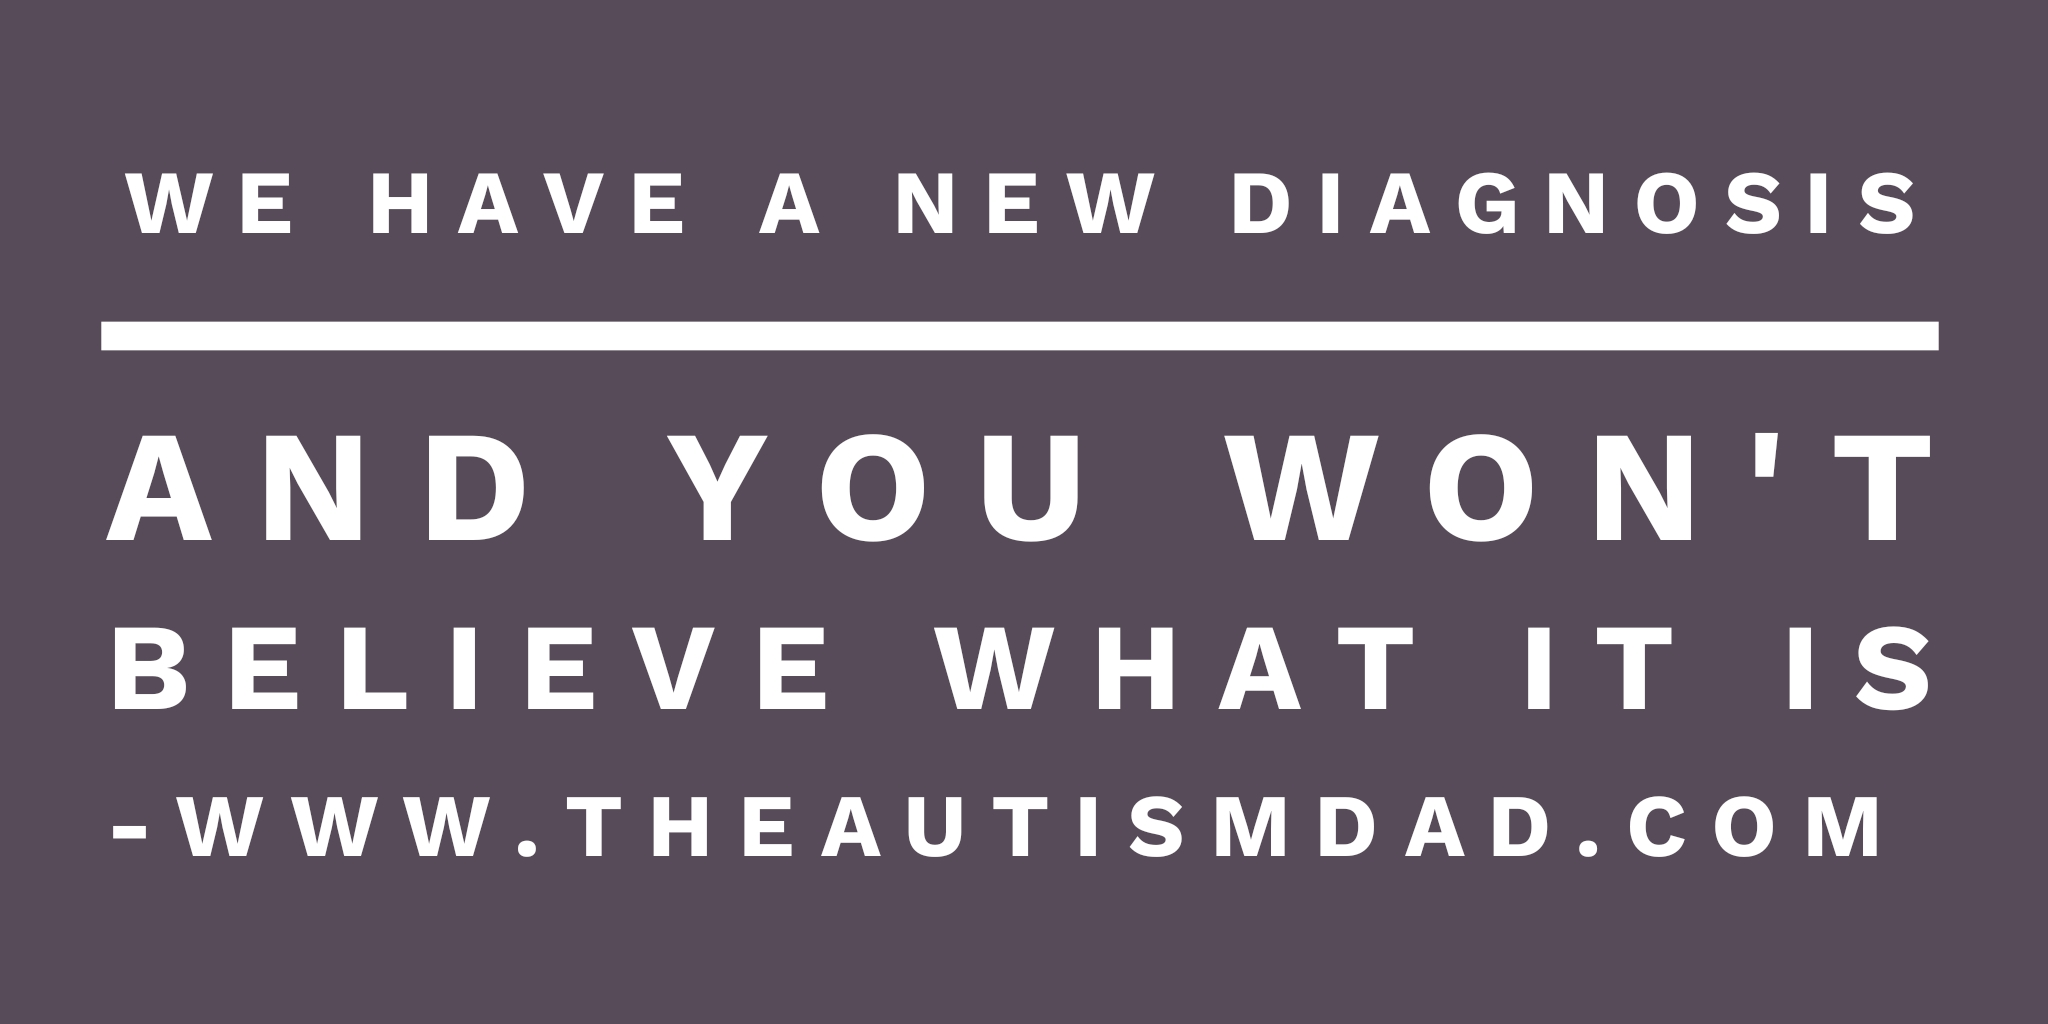 We have a new diagnosis and you won't believe what it is